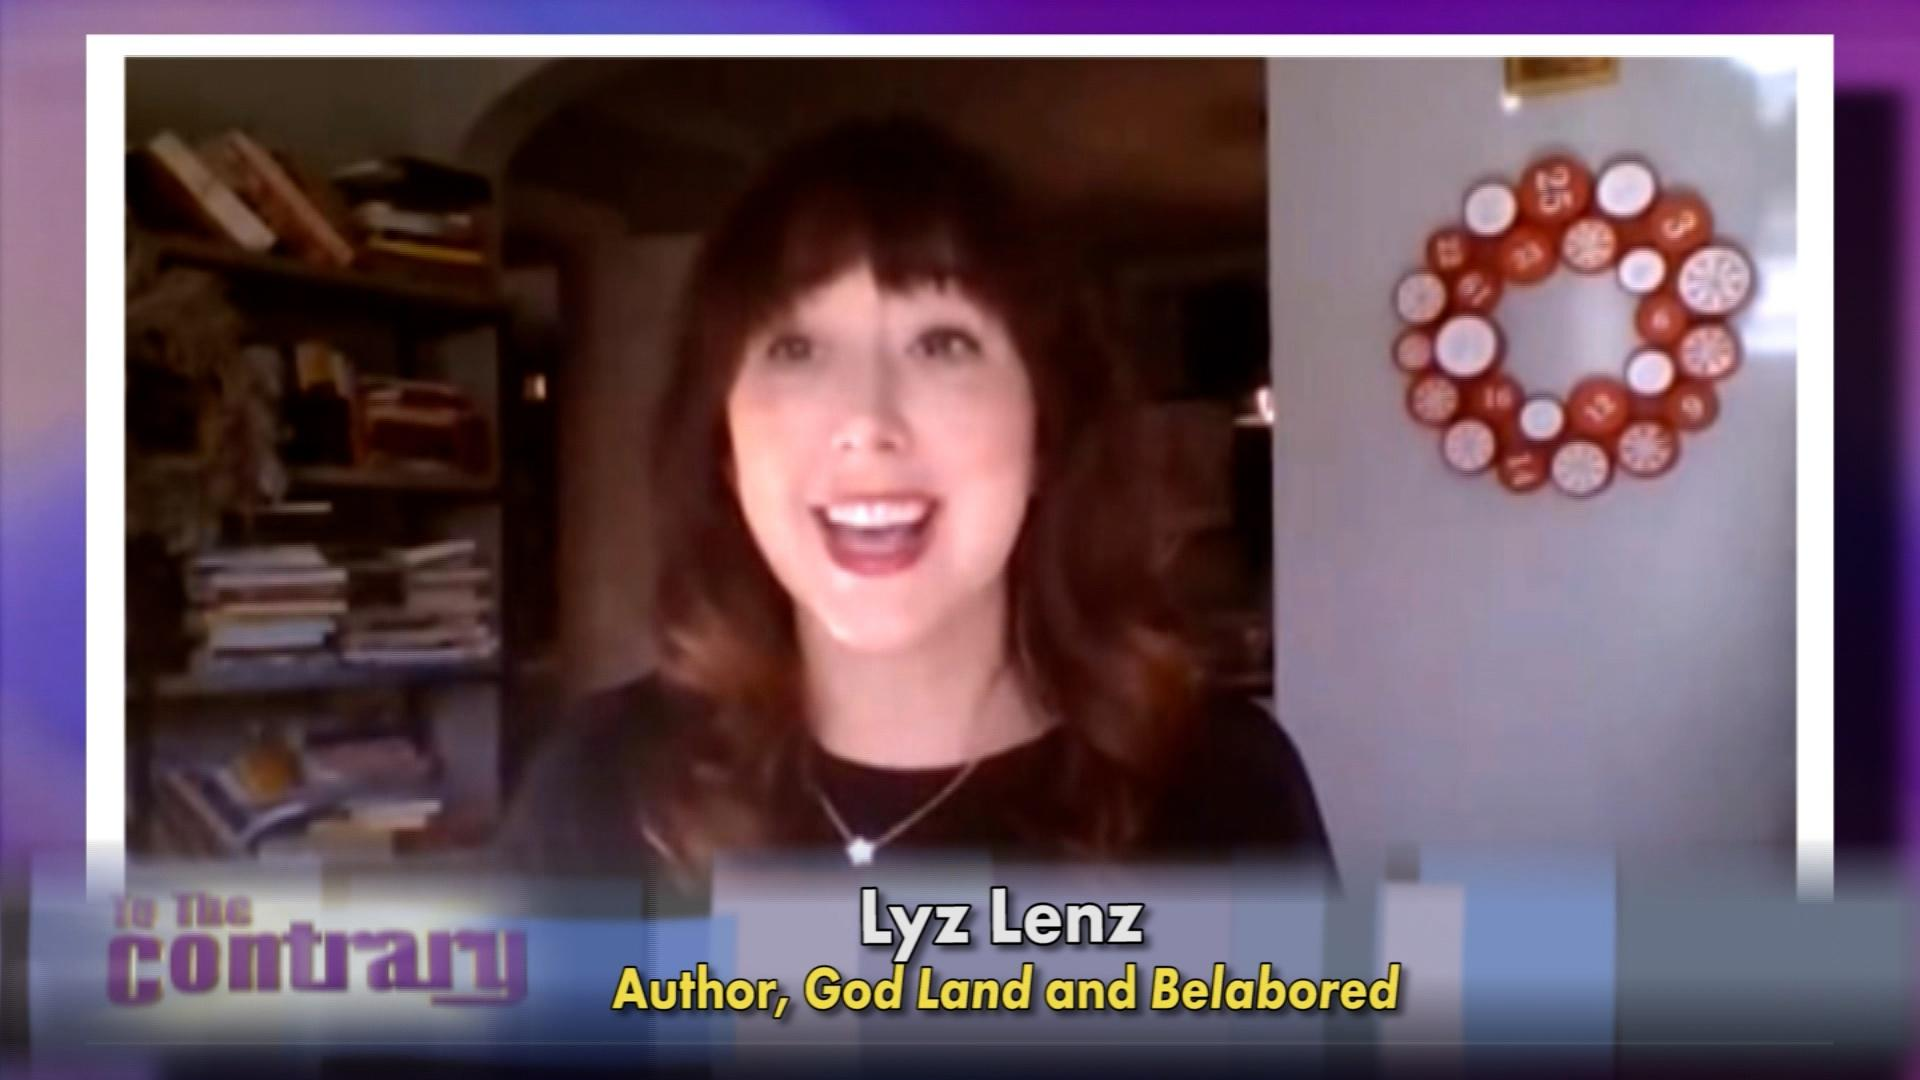 Woman Thought Leader: Lyz Lenz